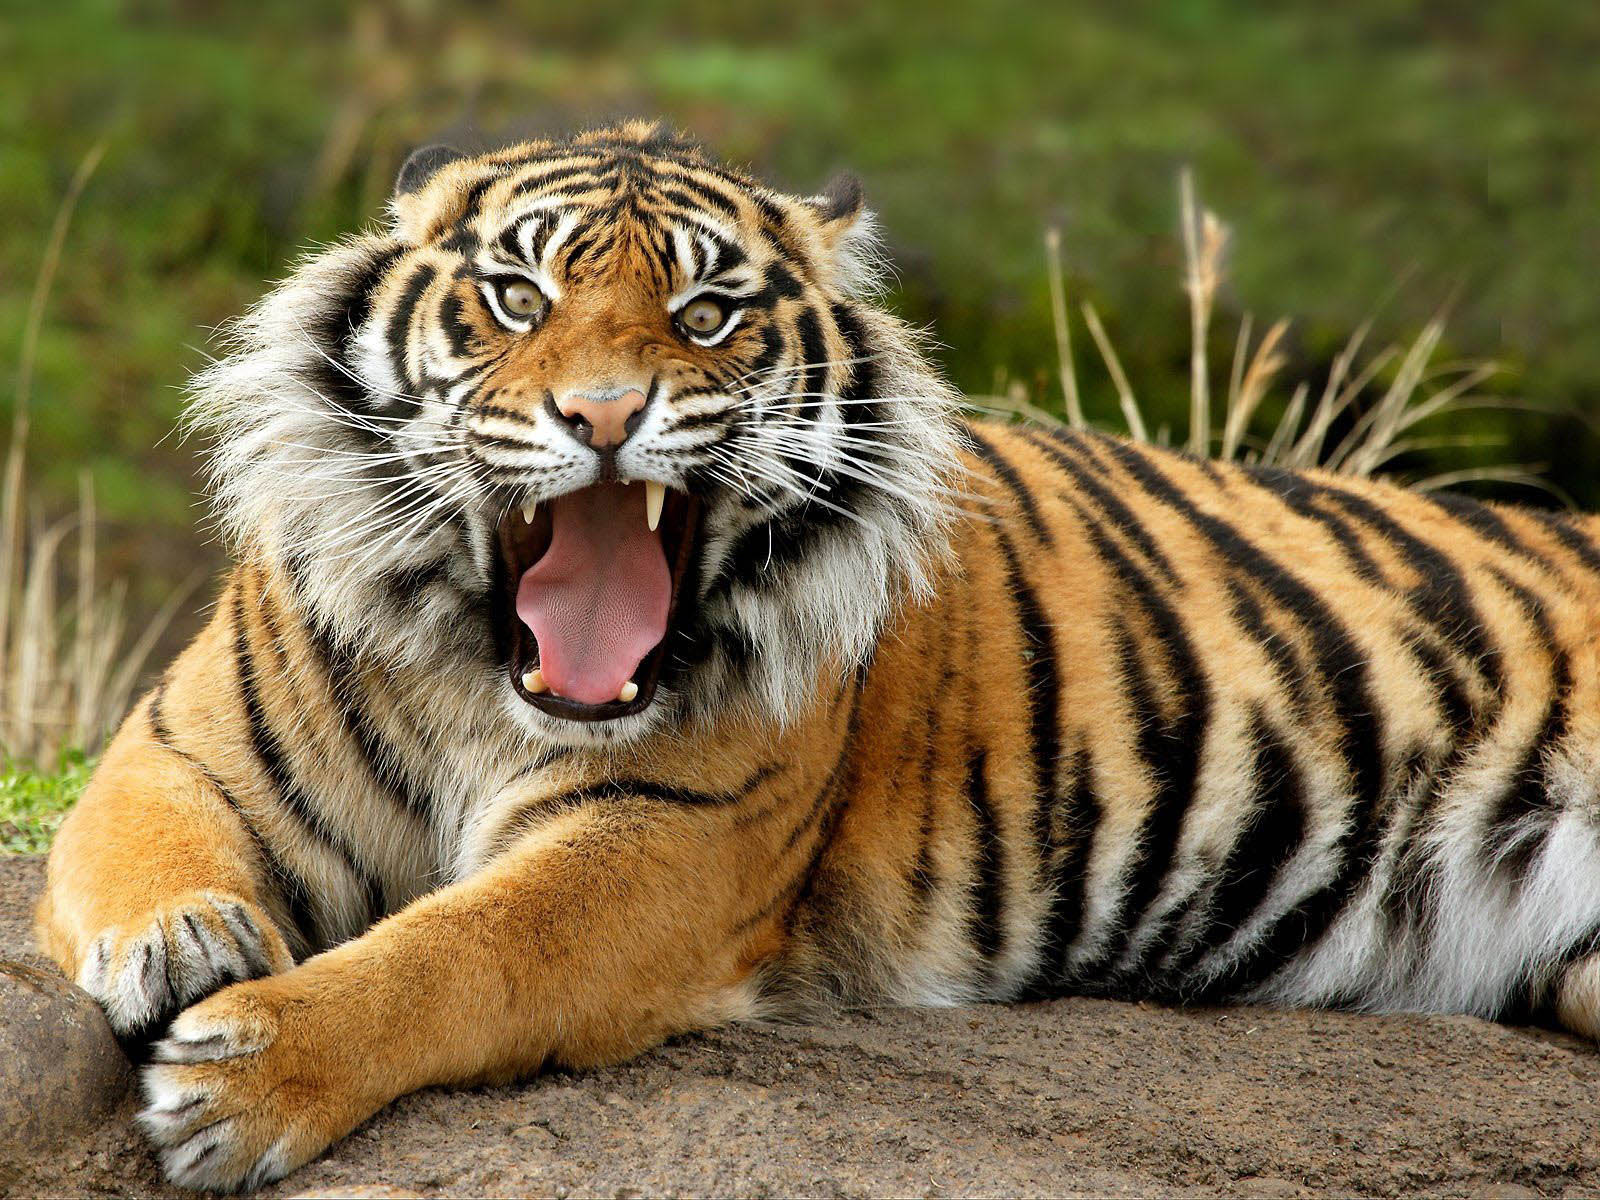 wallpaper: tiger desktop wallpapers and backgrounds